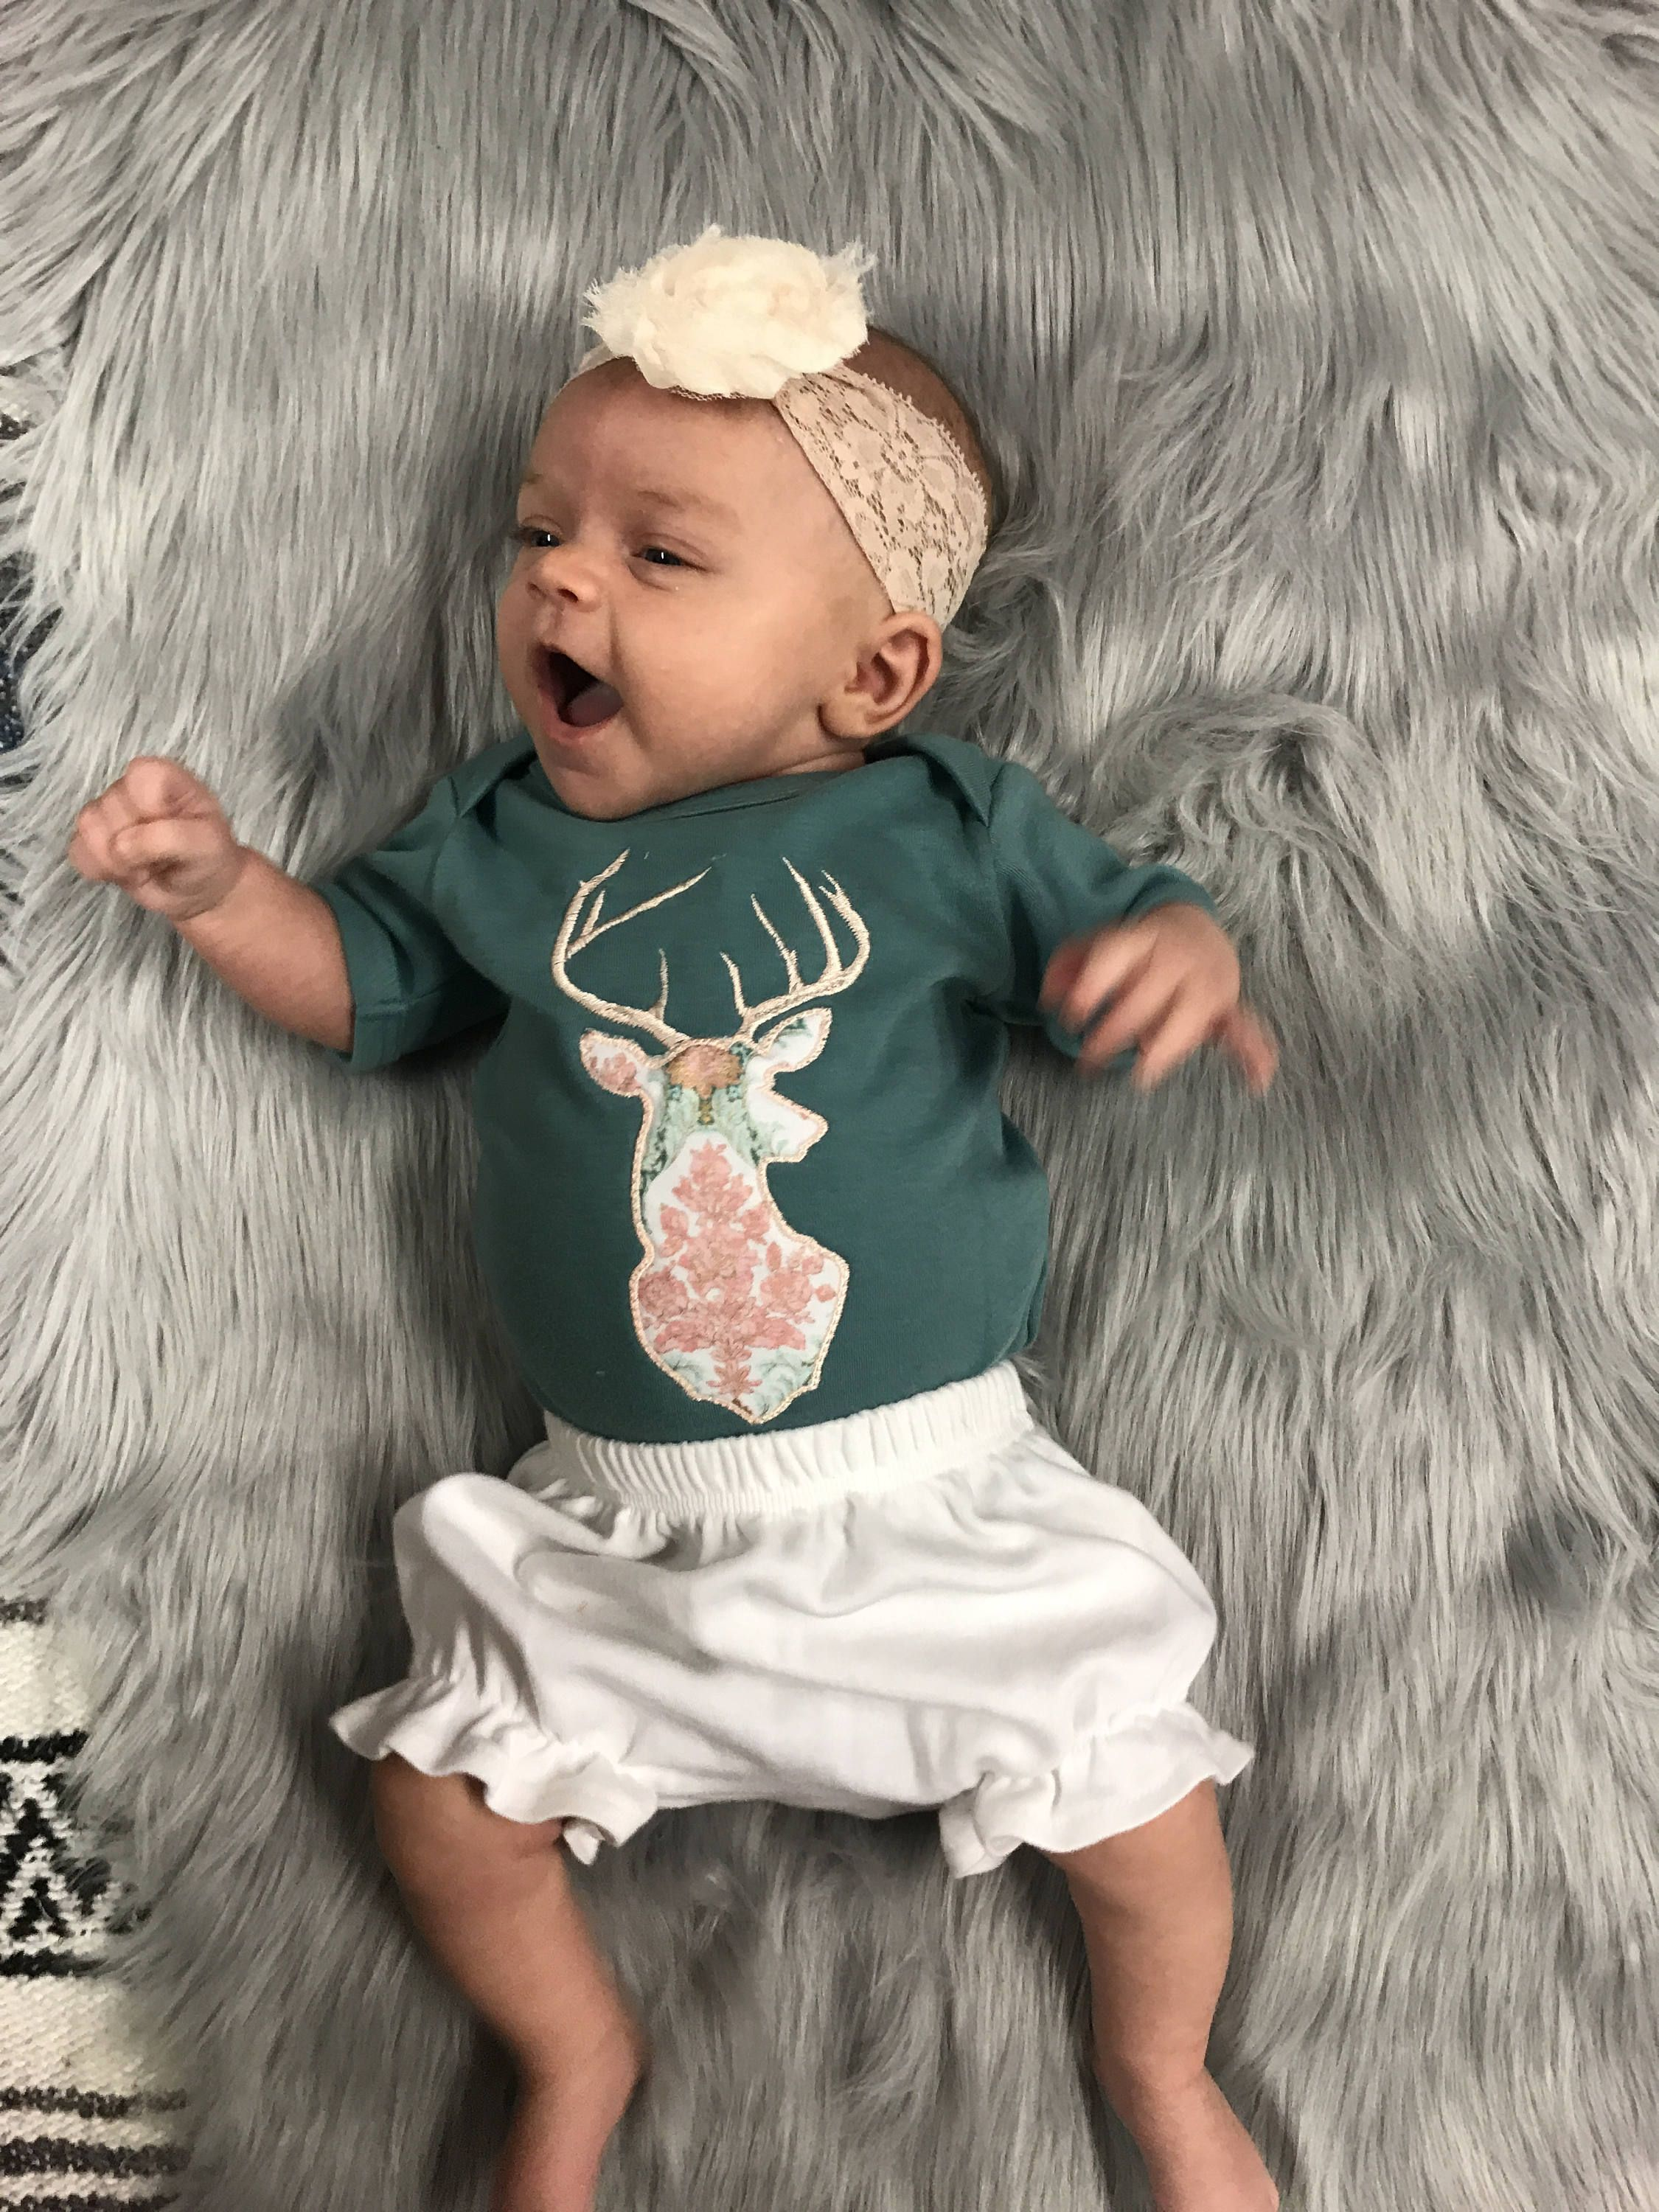 Coming Home Outfit Newborn baby girl Custom Baby Outfit Pink Deer Outfit Hat Baby Girl Baby Girl Clothes|Gifts for Mom Headband